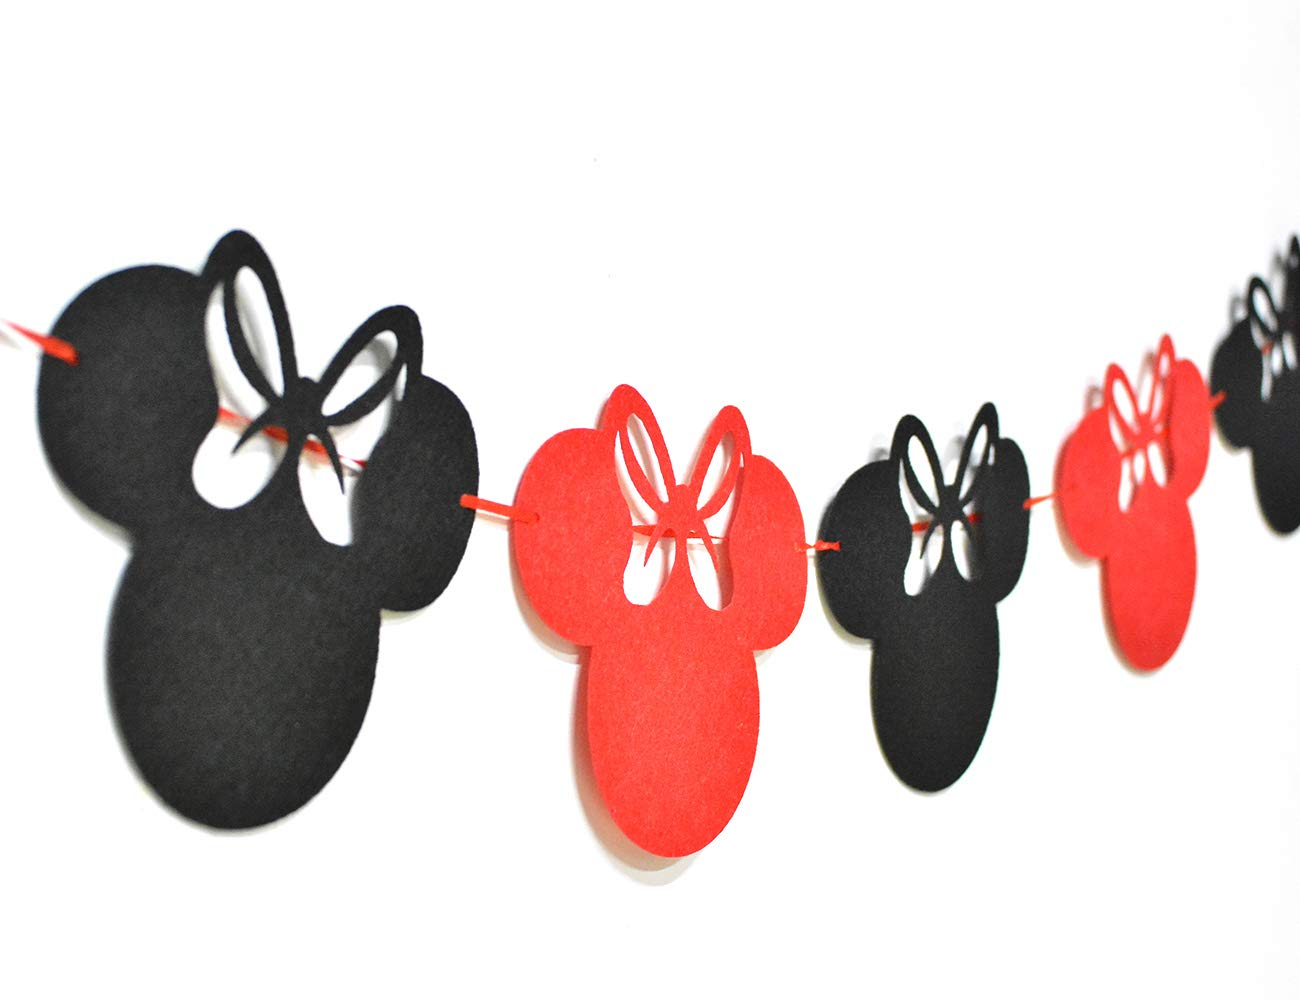 JOYMEMO Minnie Themed Party Supplies Birthday Decorations Red and Black for Girls, Ear Headband, Happy Birthday Banner and Garland for 1st 2nd Birthday Decorations